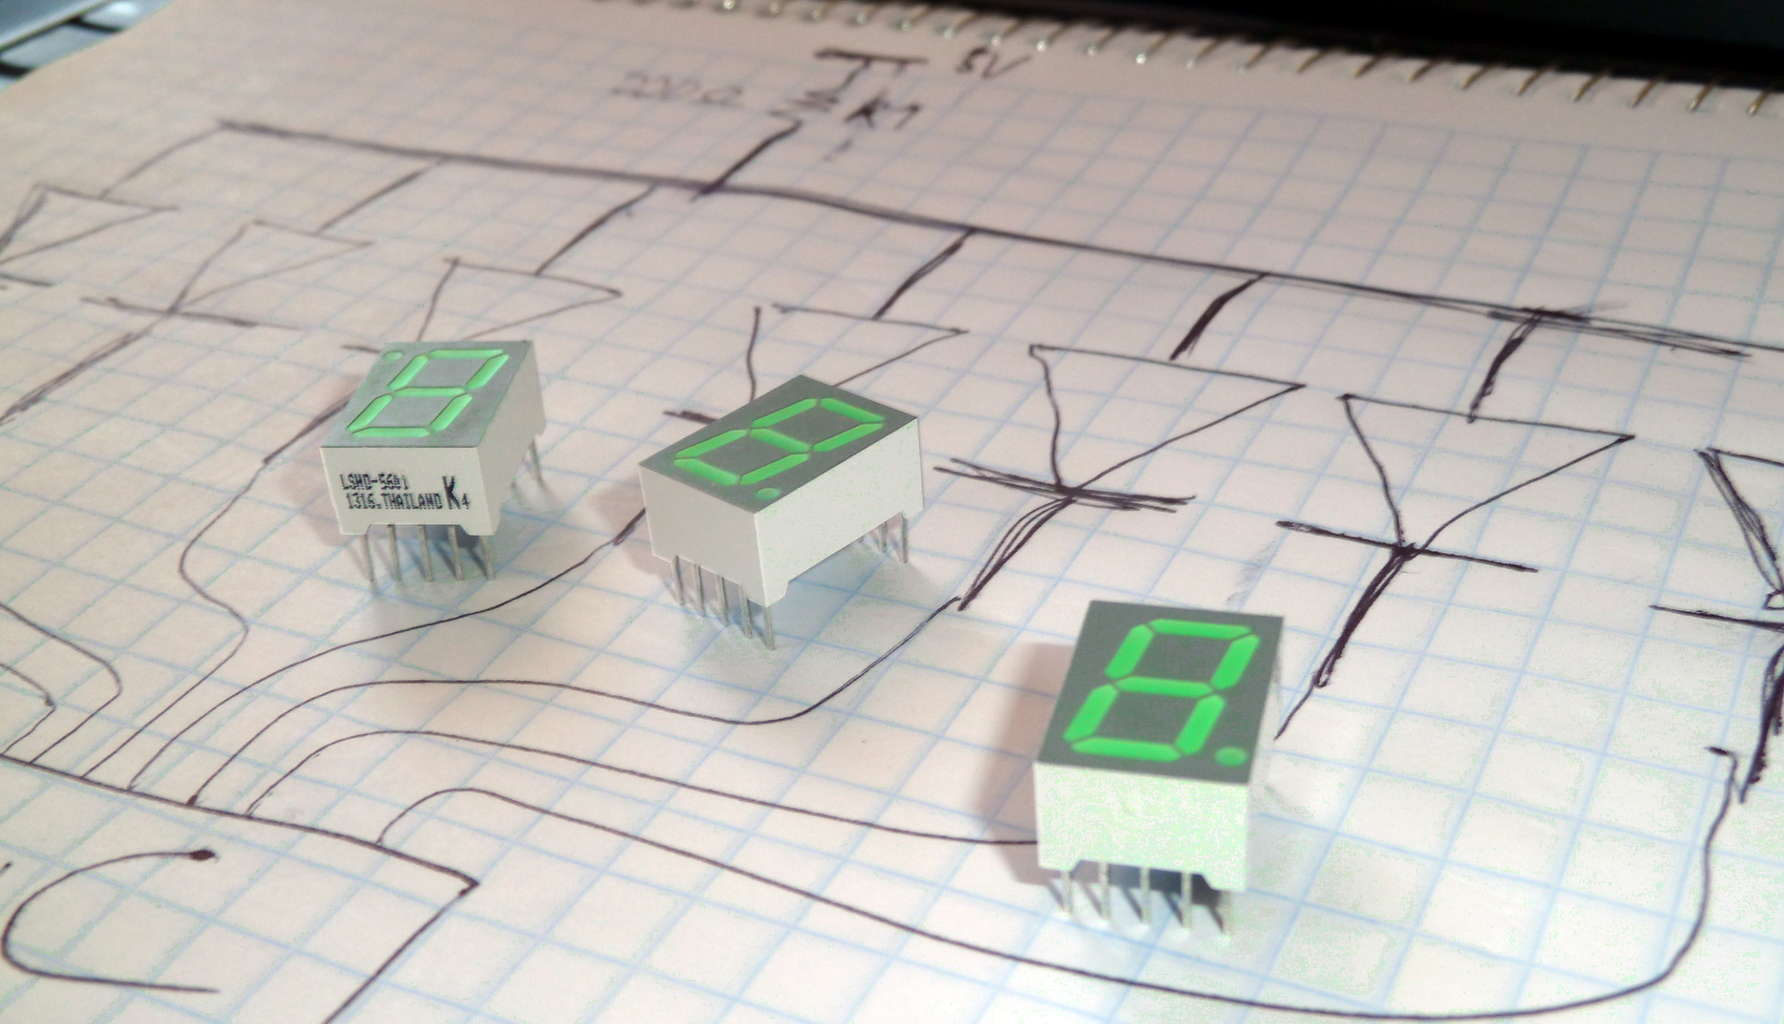 4 Simple Steps That Will Help You Build Better Circuits Electronic Games Circuit